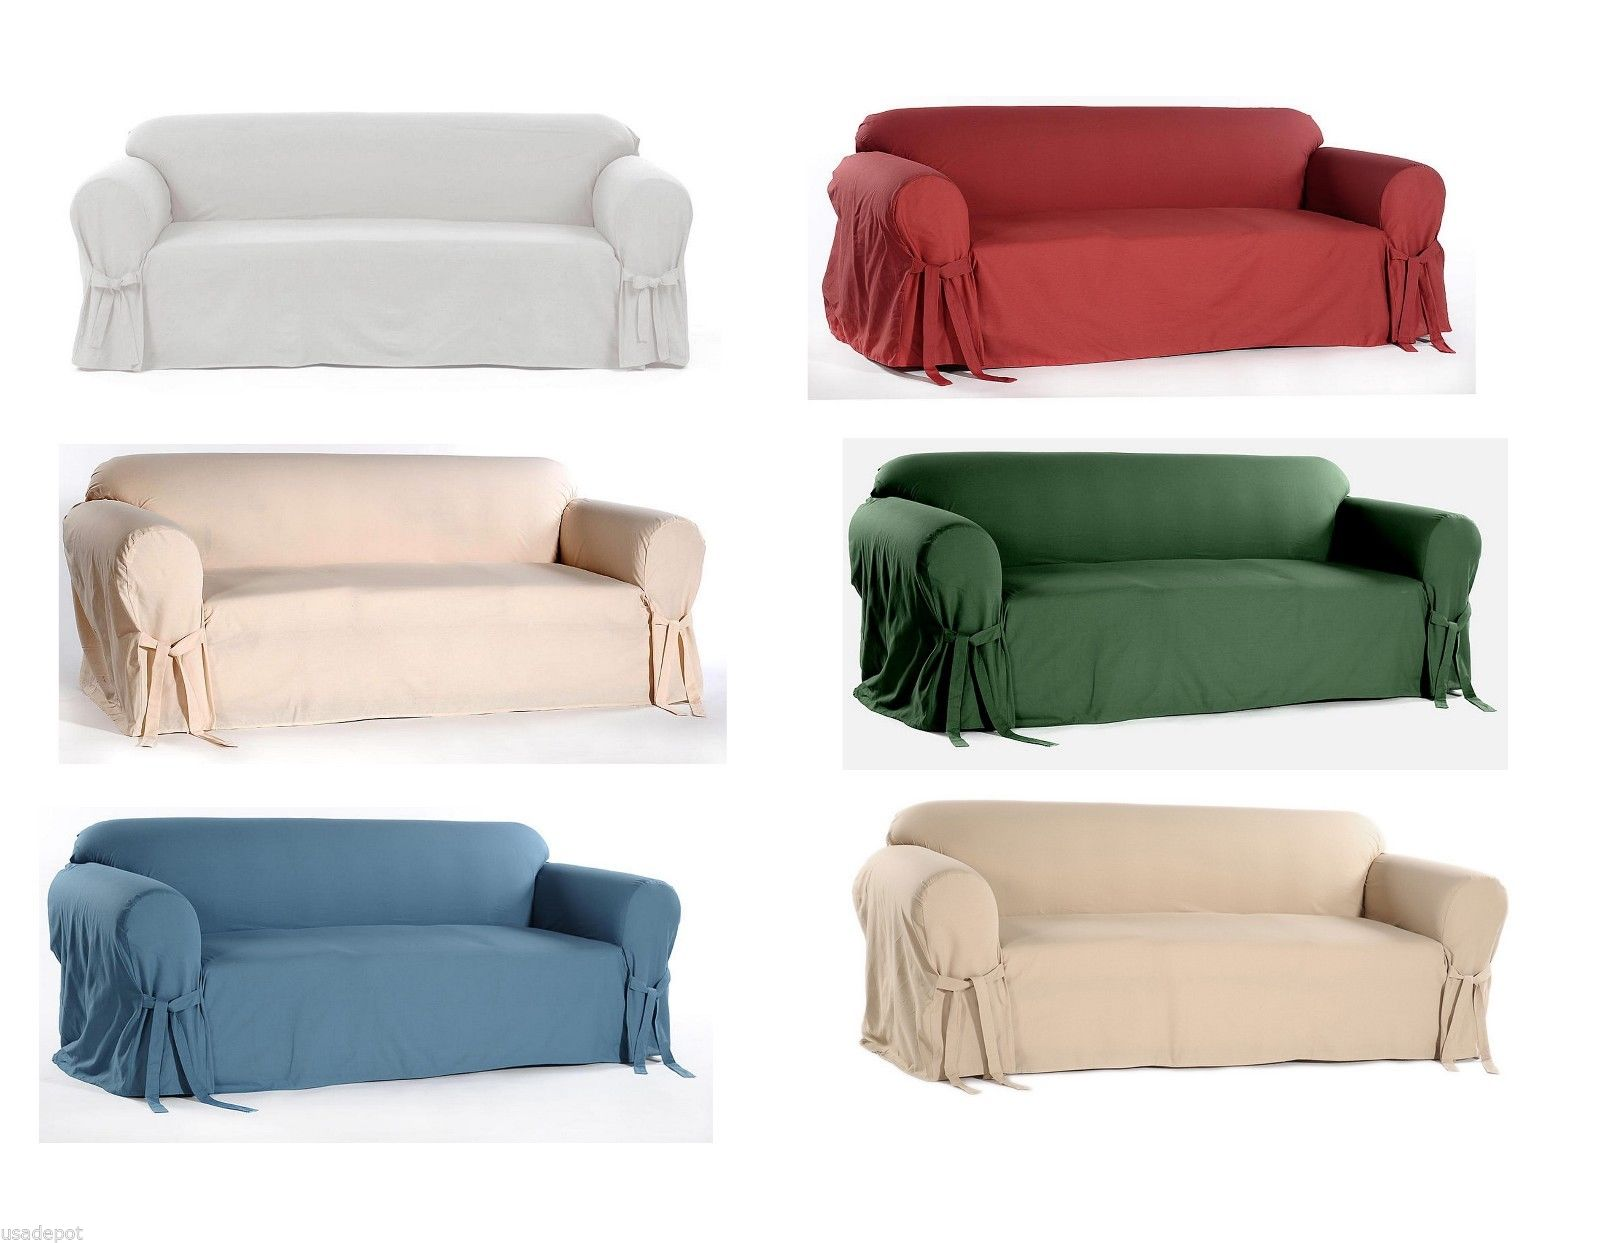 Cotton Dock Round Arm Slipcover For Sofa Loveseat And Chair